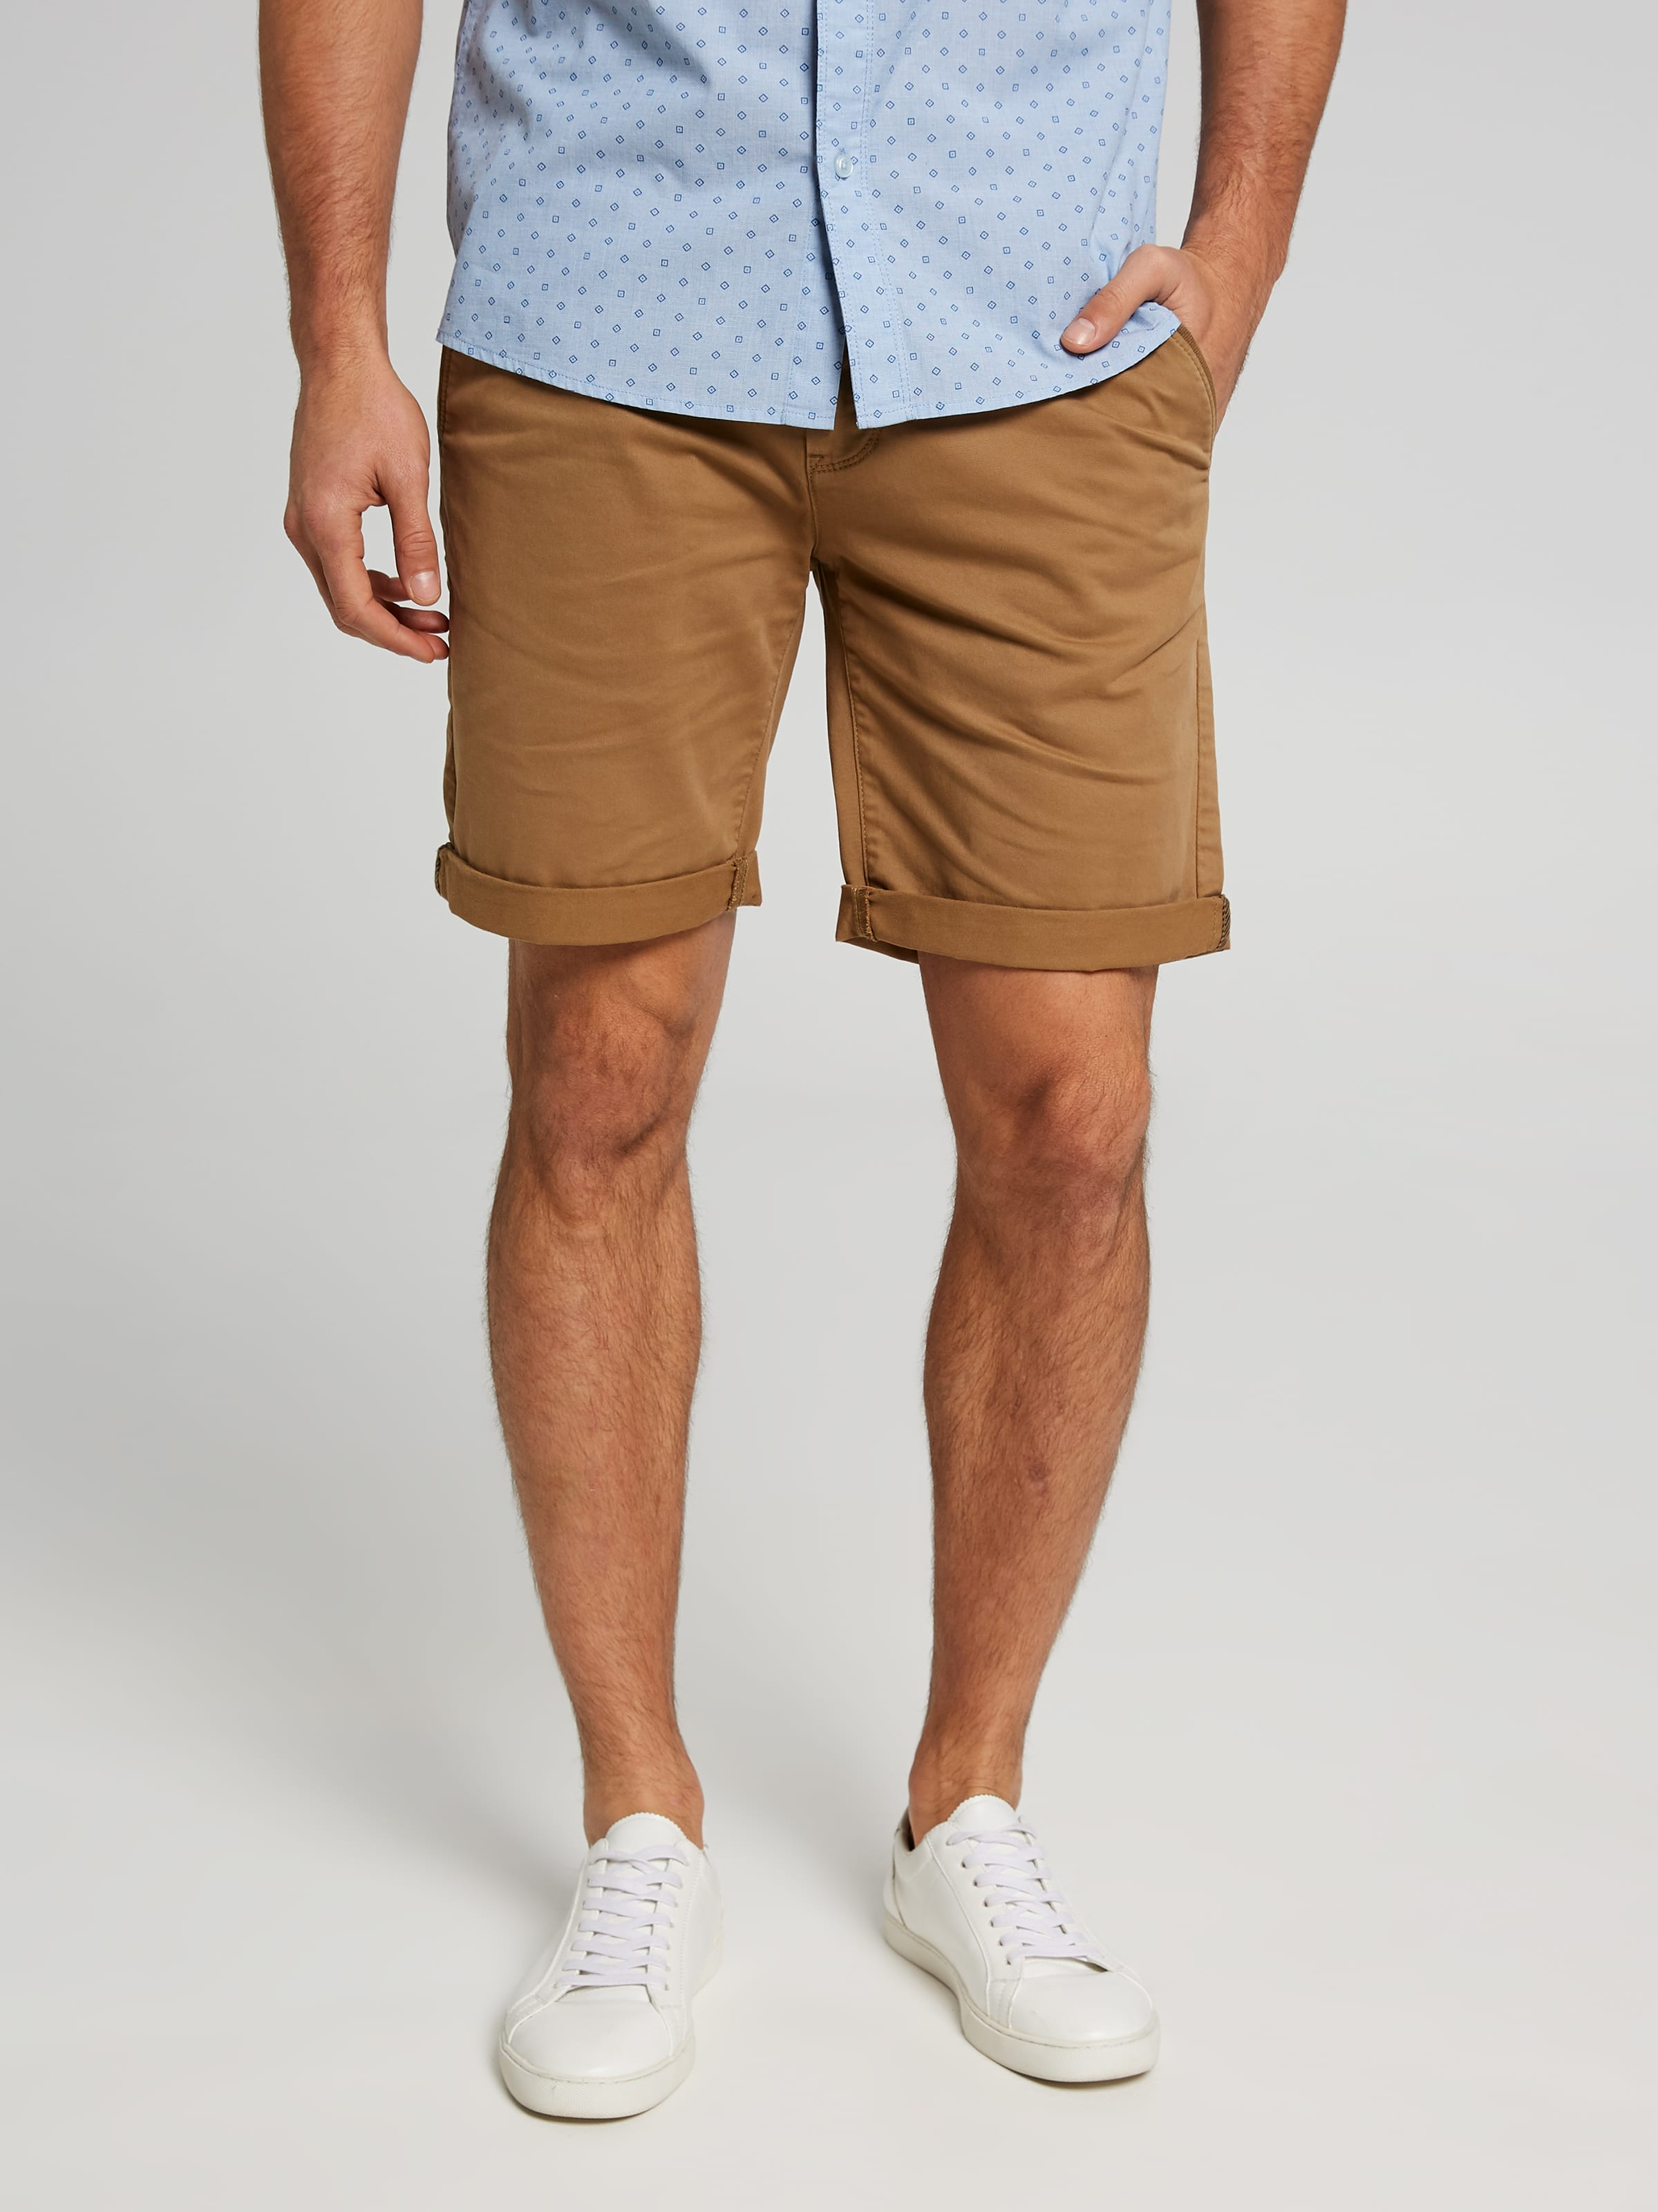 Just Jeans Summer Stretch Chino Short 9653013